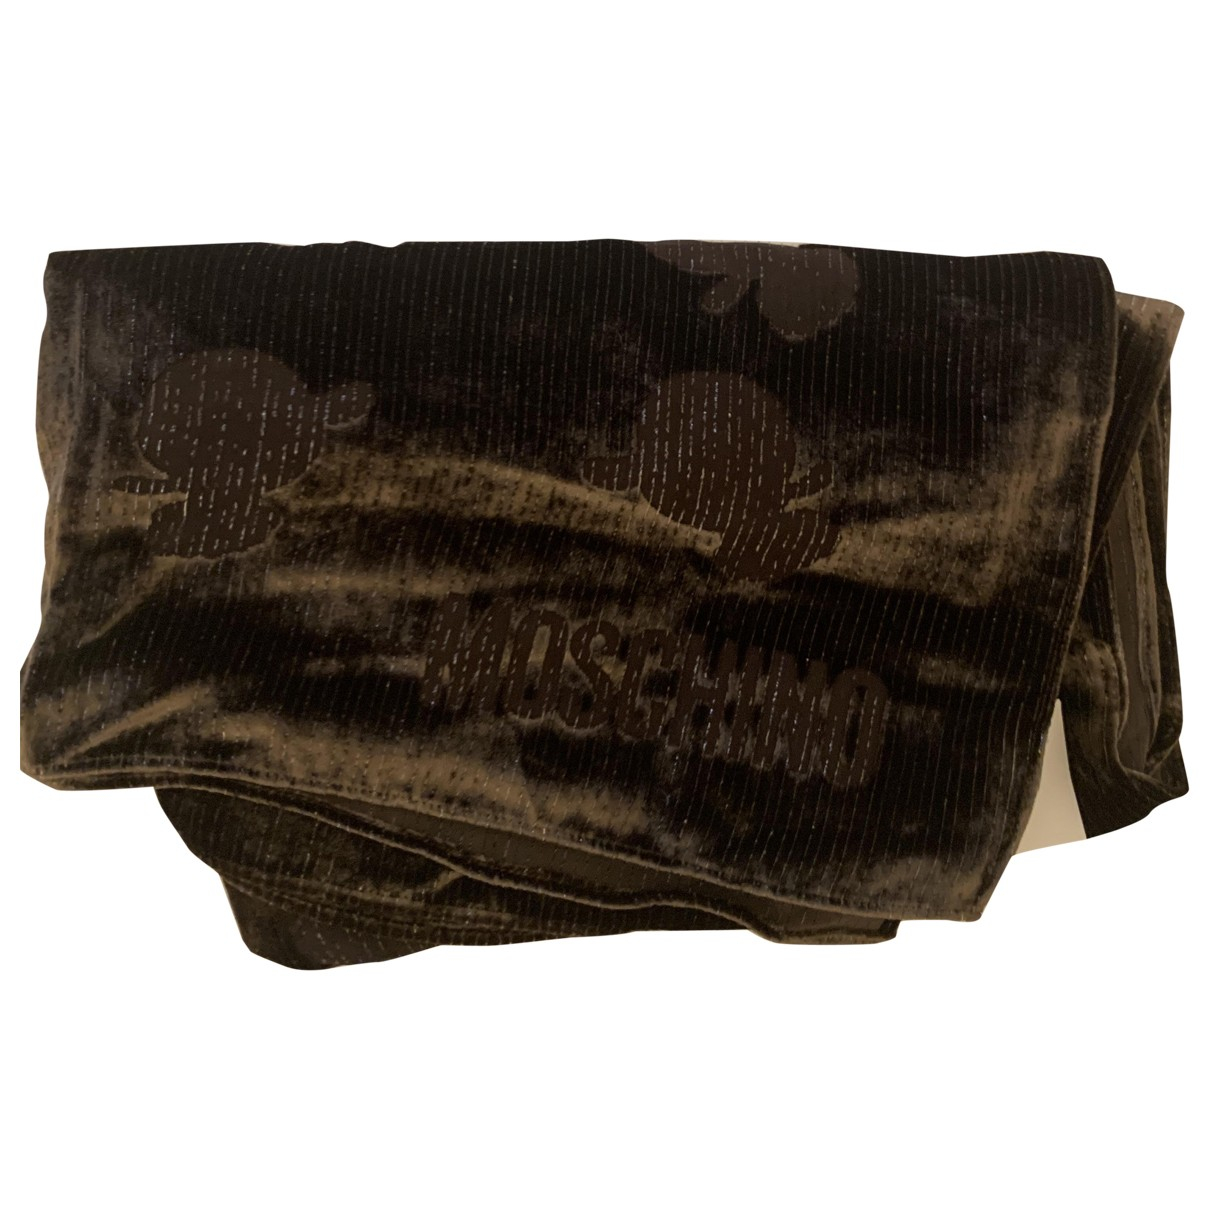 Moschino \N Brown scarf for Women \N